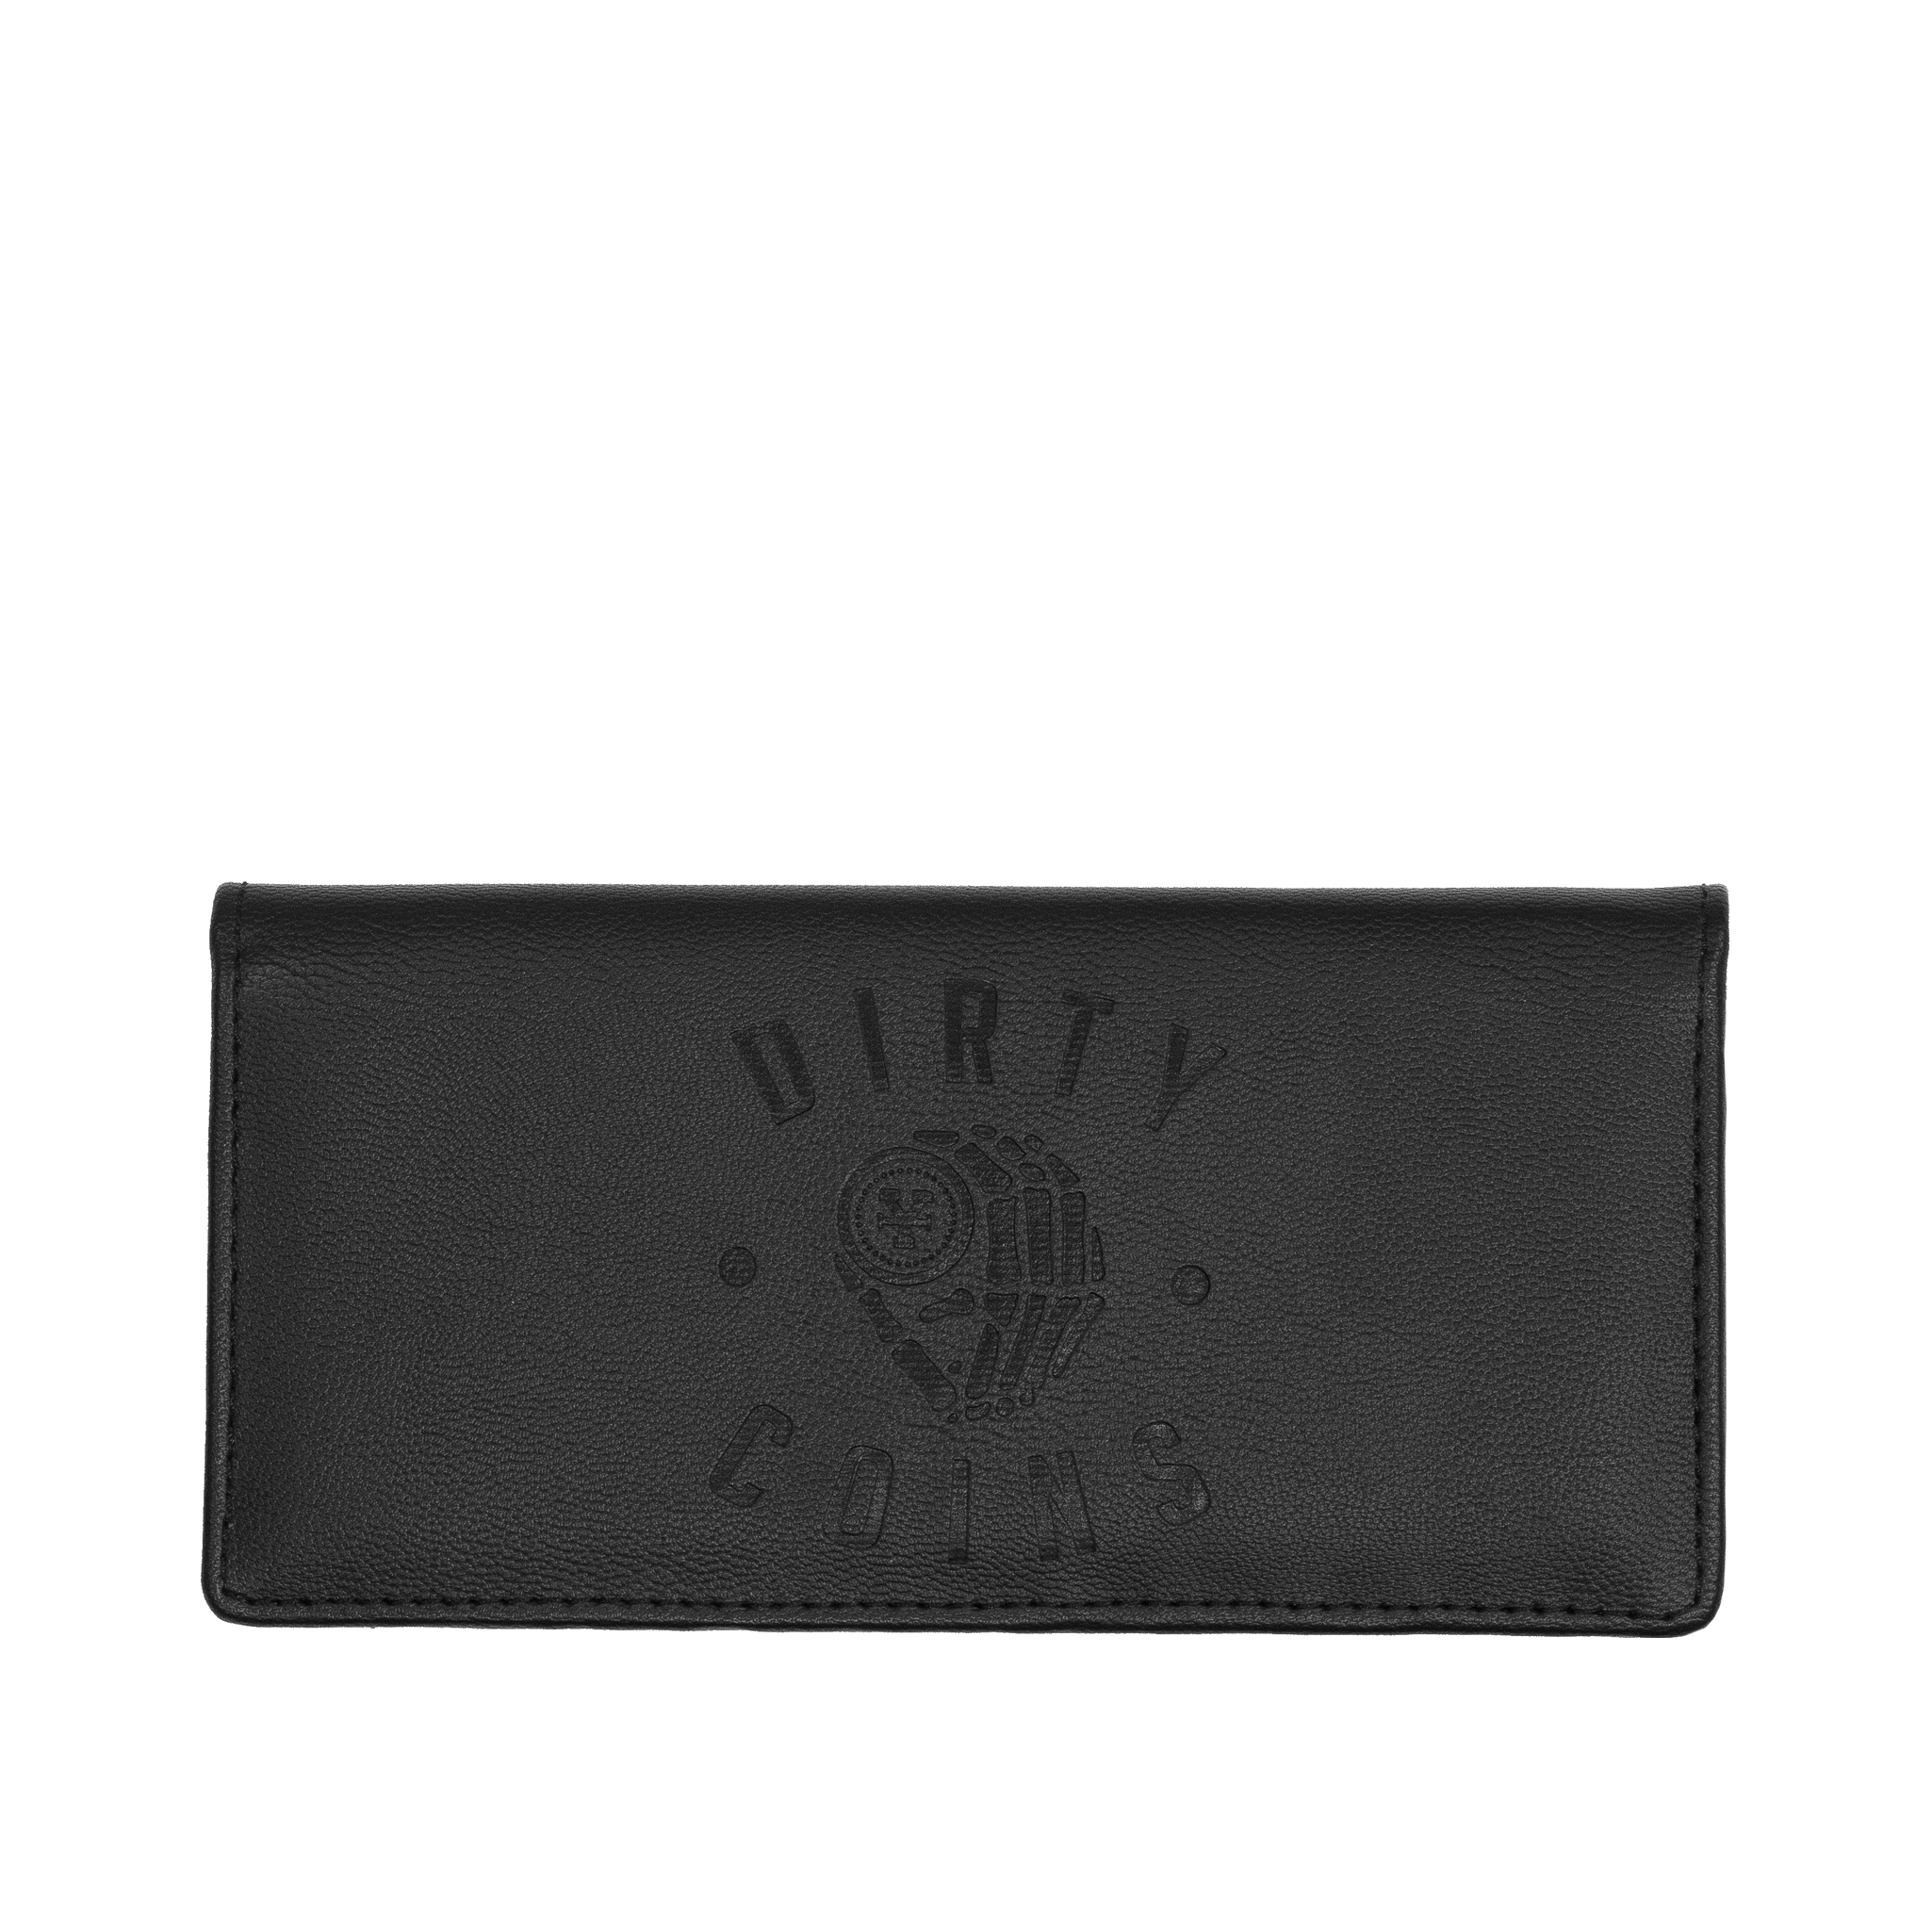 Dirtycoins Logo Long Wallet